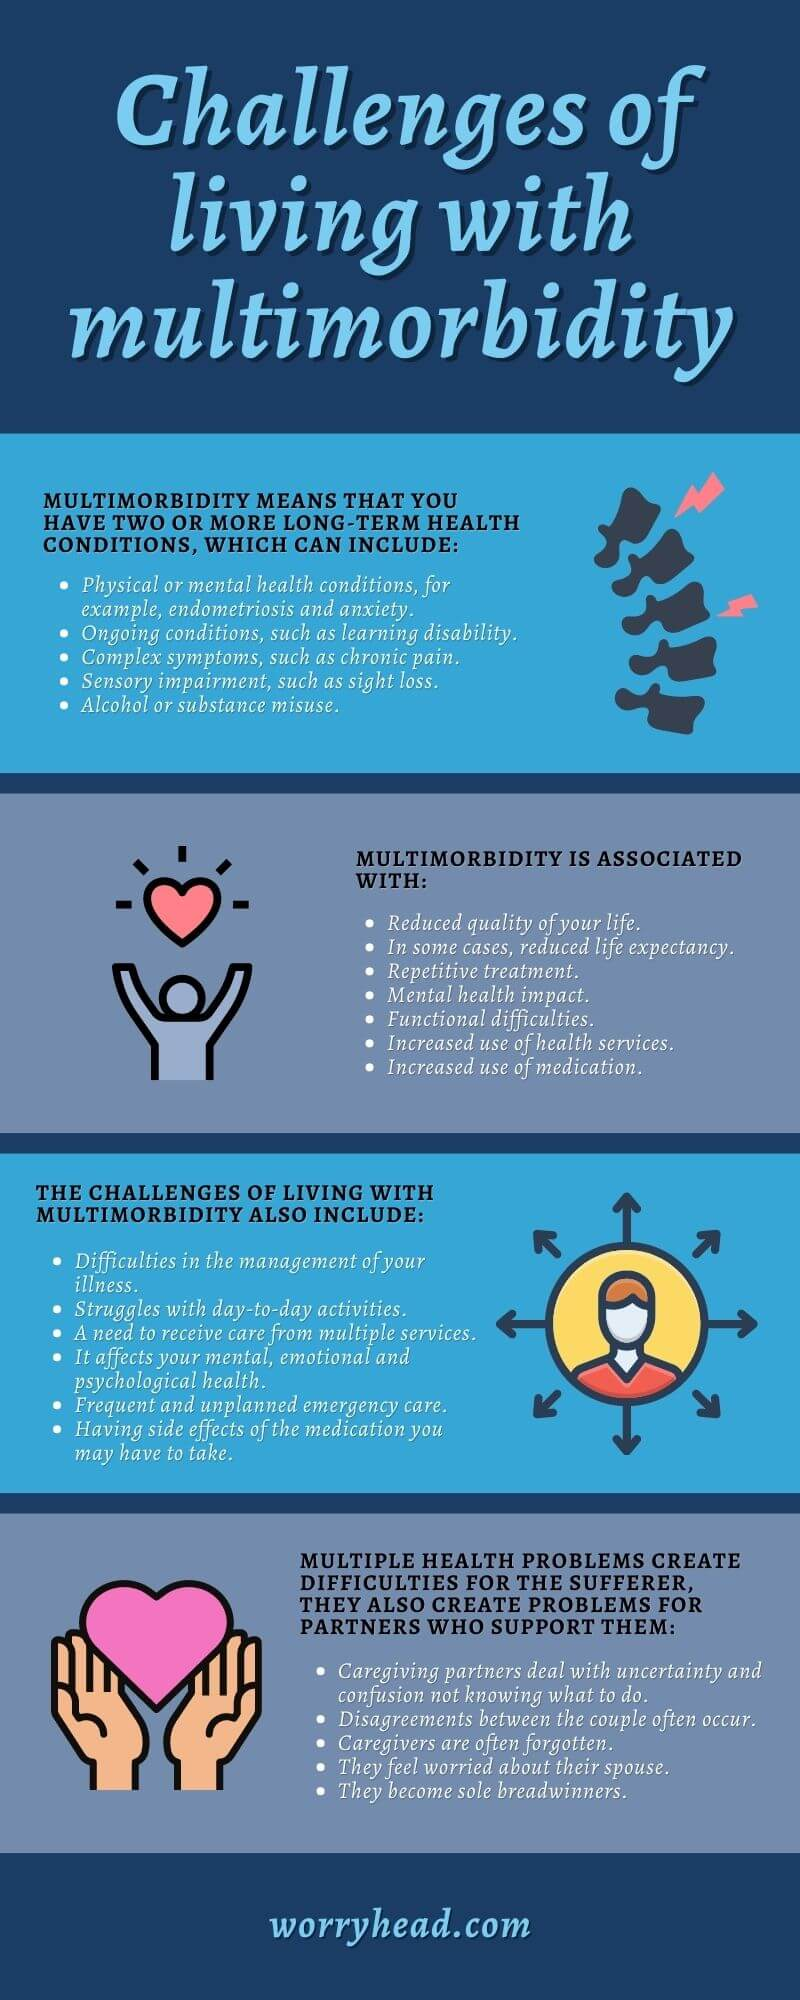 Challenges of living with multimorbidity infographic